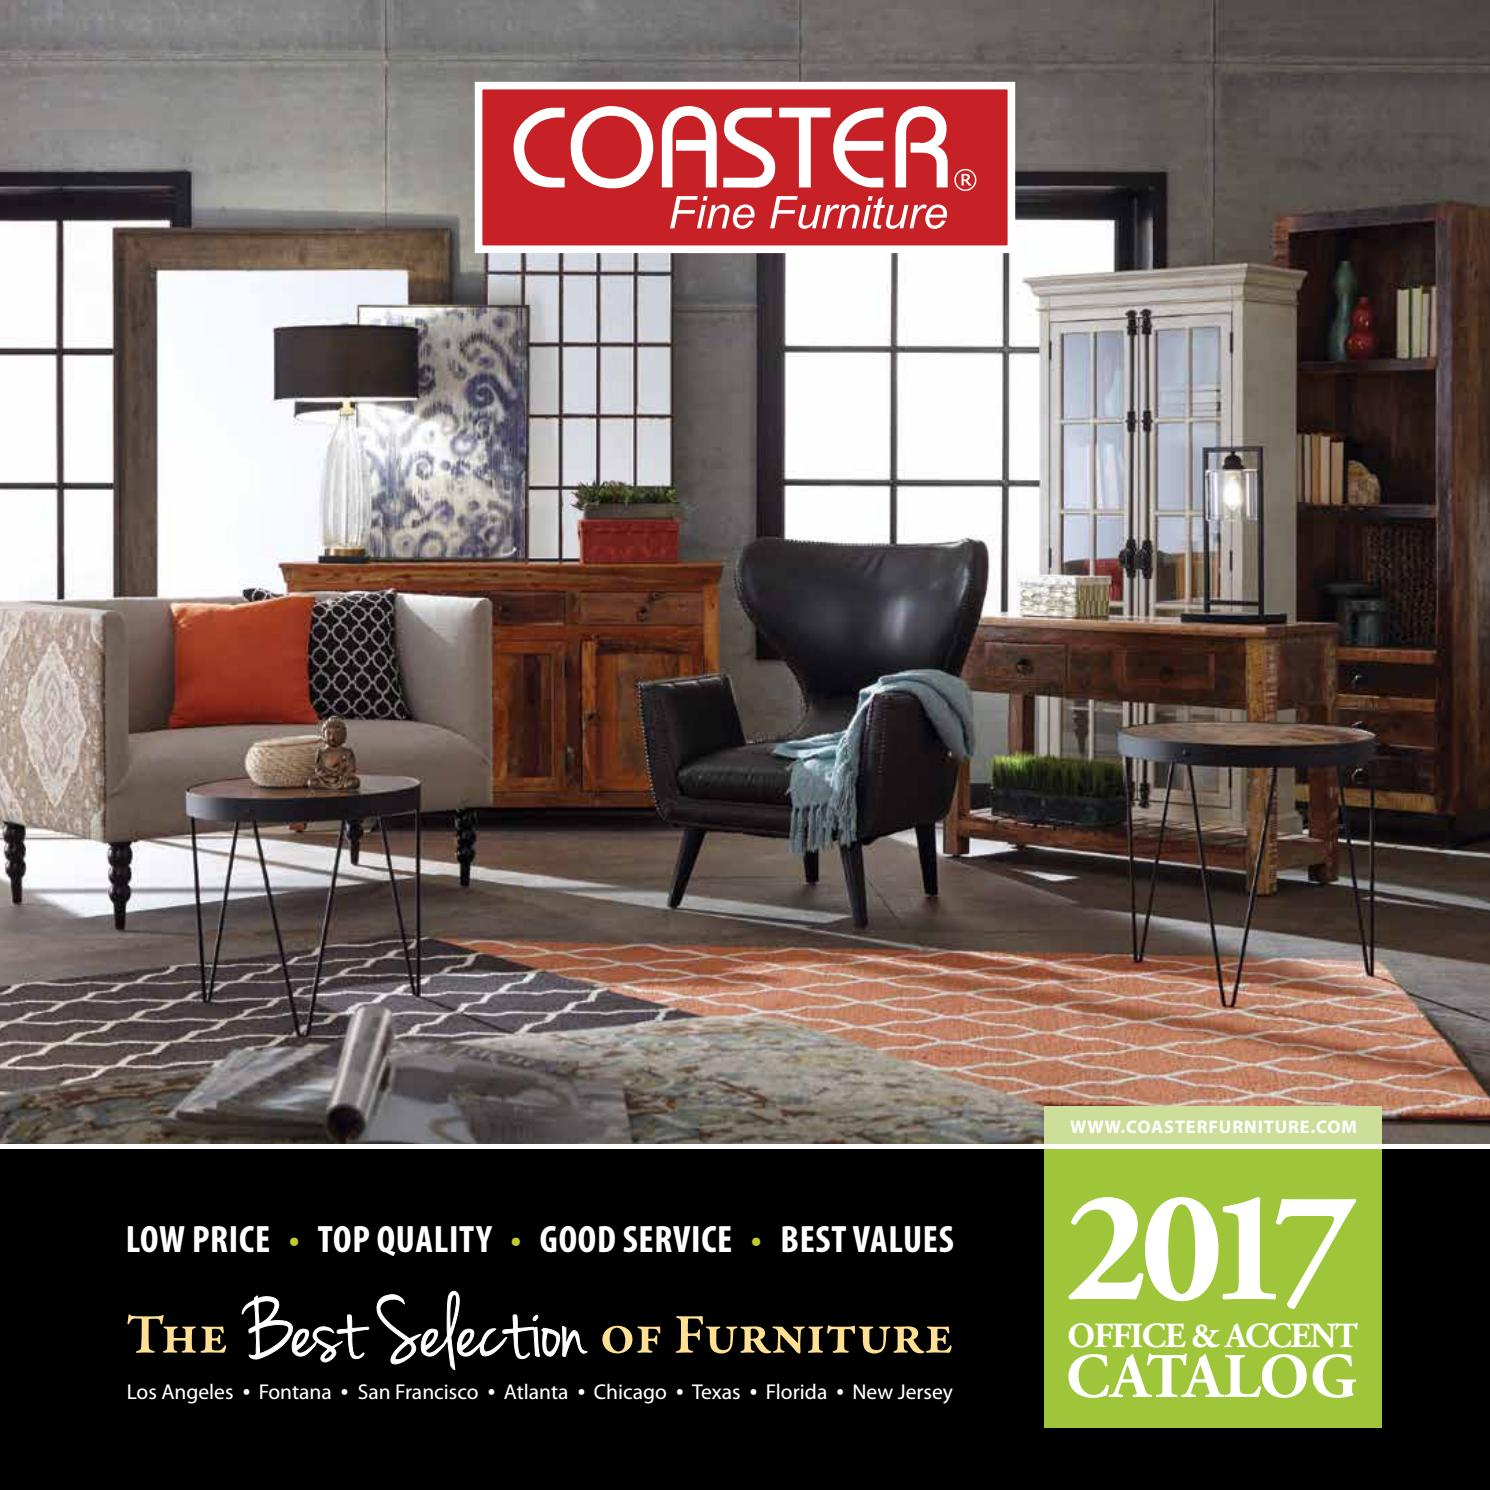 Light pink accent chair 187 home design 2017 - 2017 Coaster Office And Accents Catalog By Seaboard Bedding And Furntiure Issuu